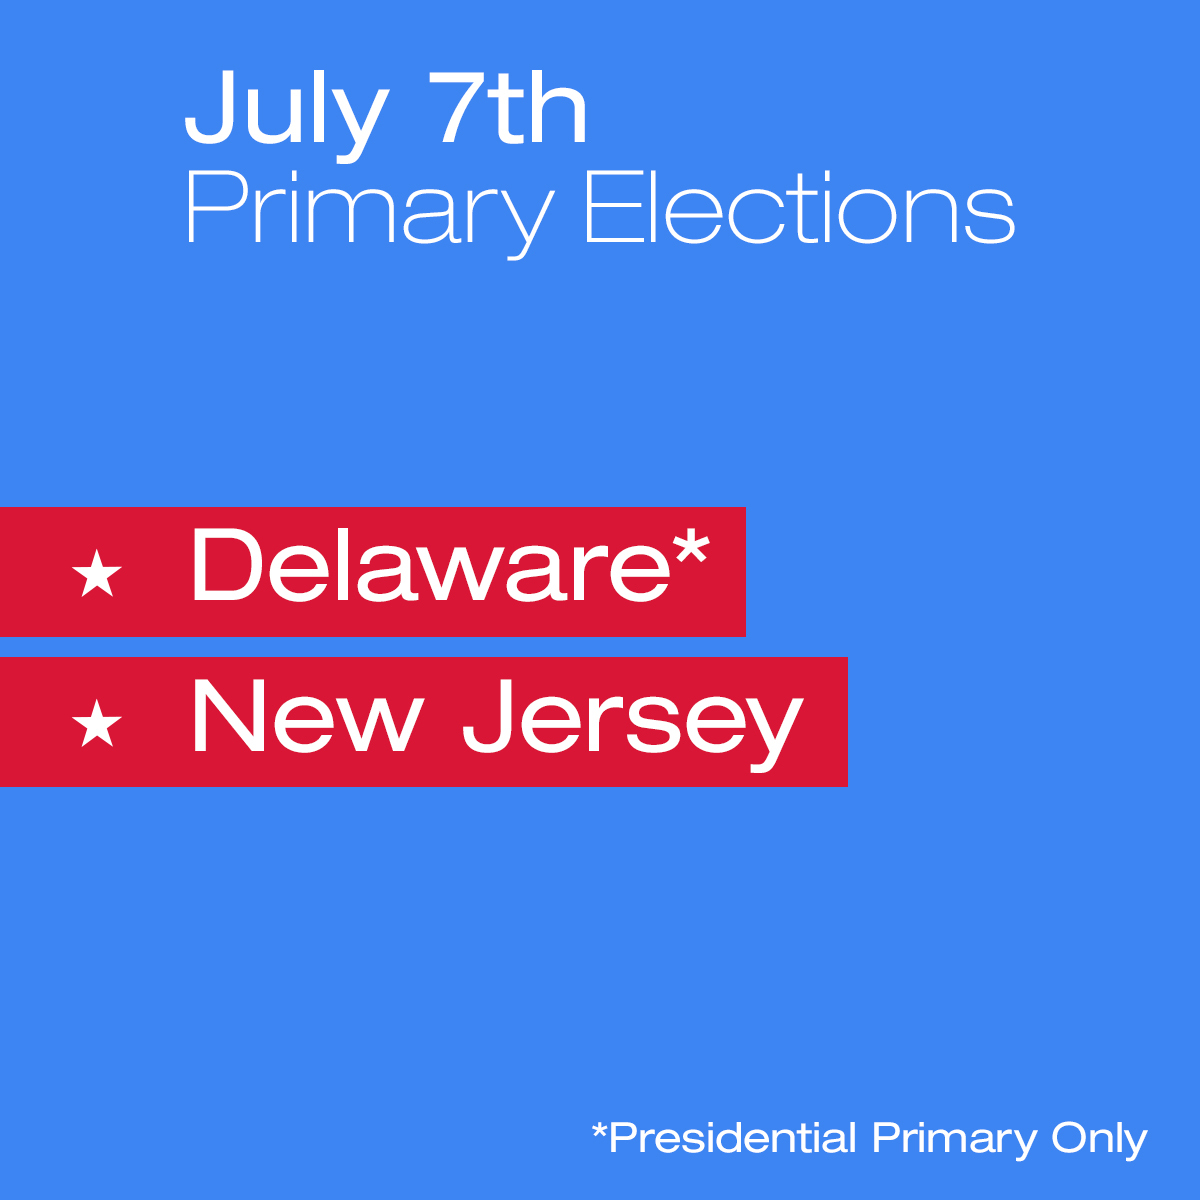 Heads up, Delaware and New Jersey! https://t.co/8URfDK4fkT